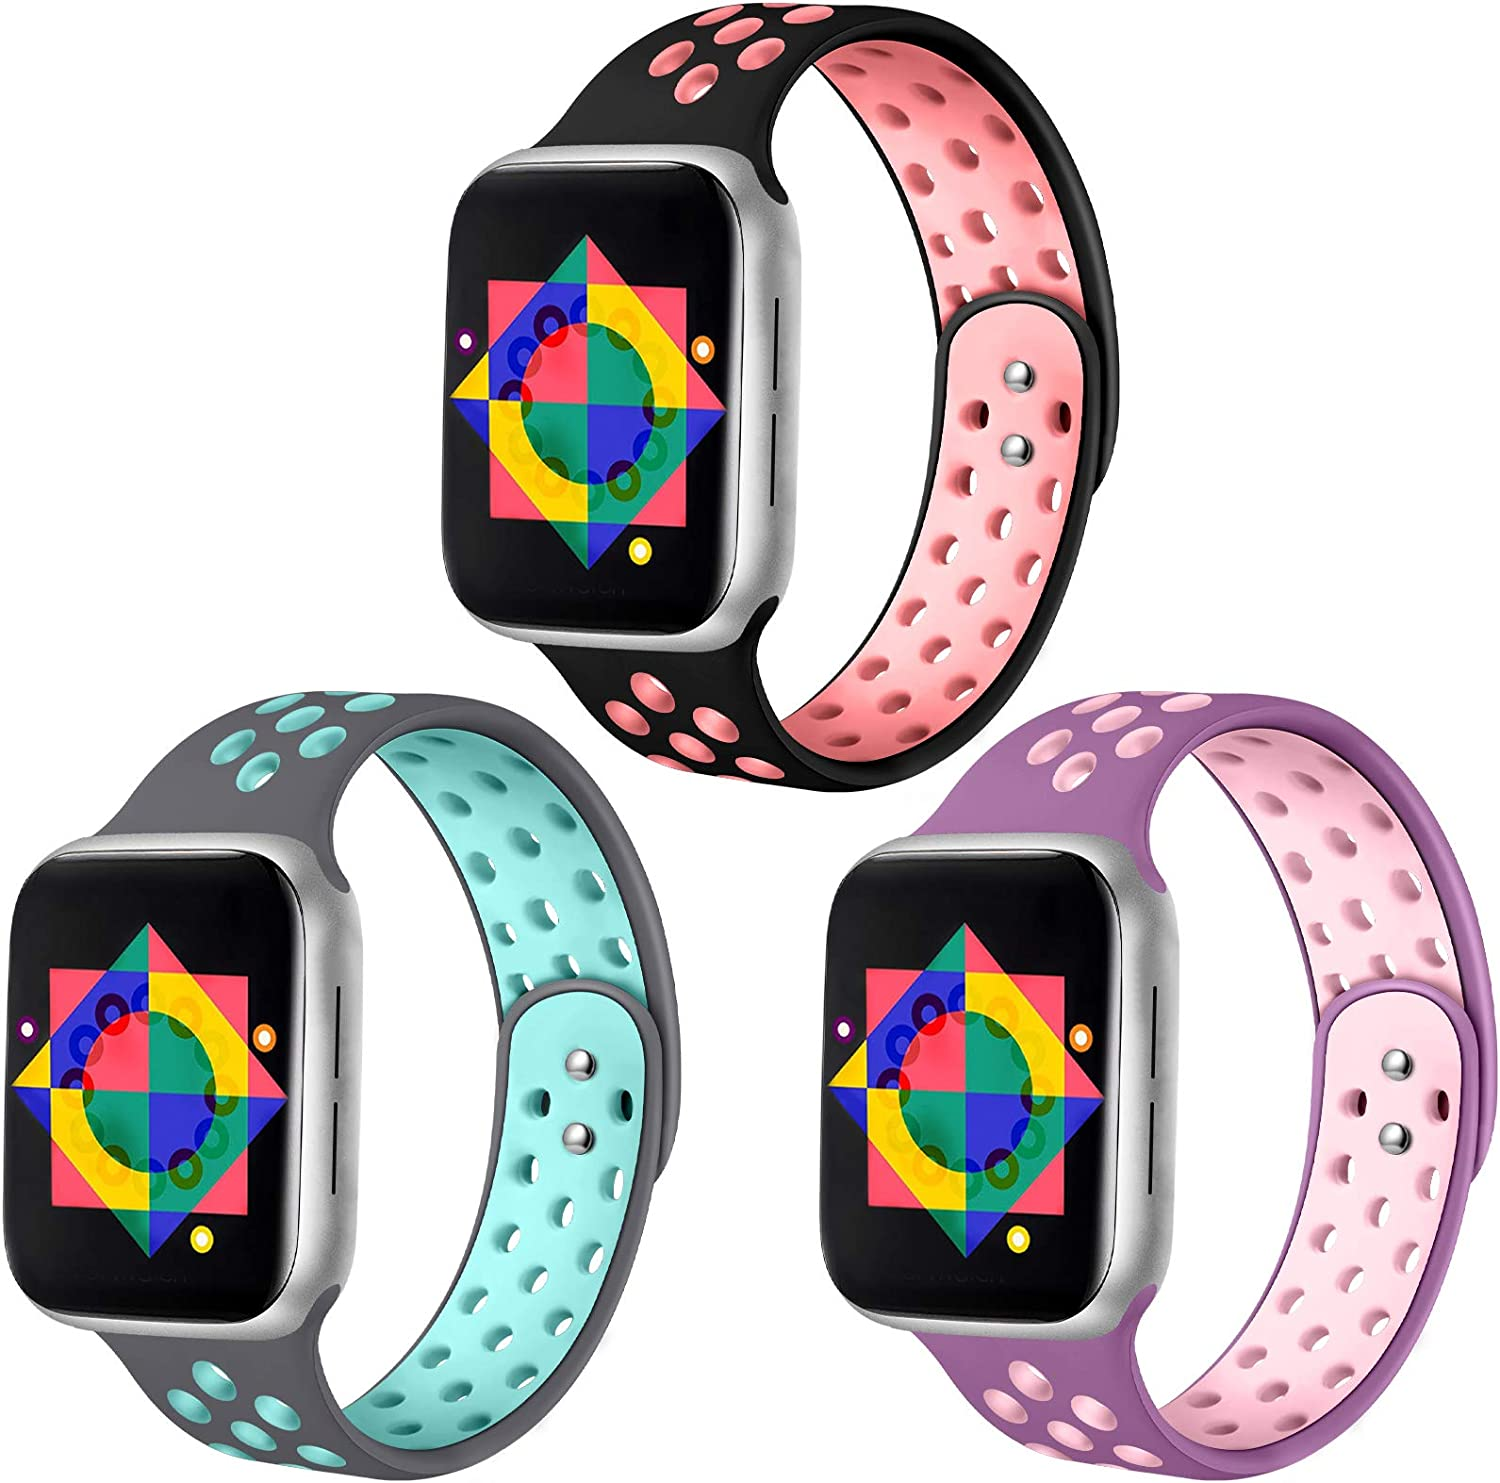 ilopee Compatible for Apple Watch Series 6 5 44mm Bands Womens - Silicone Breathable Wristbands for iWatch Bands 42mm Series SE 4 3 2 1, 3 Pack of Black/Pink, Gray/Teal, Light Purple/Light Pink, M/L